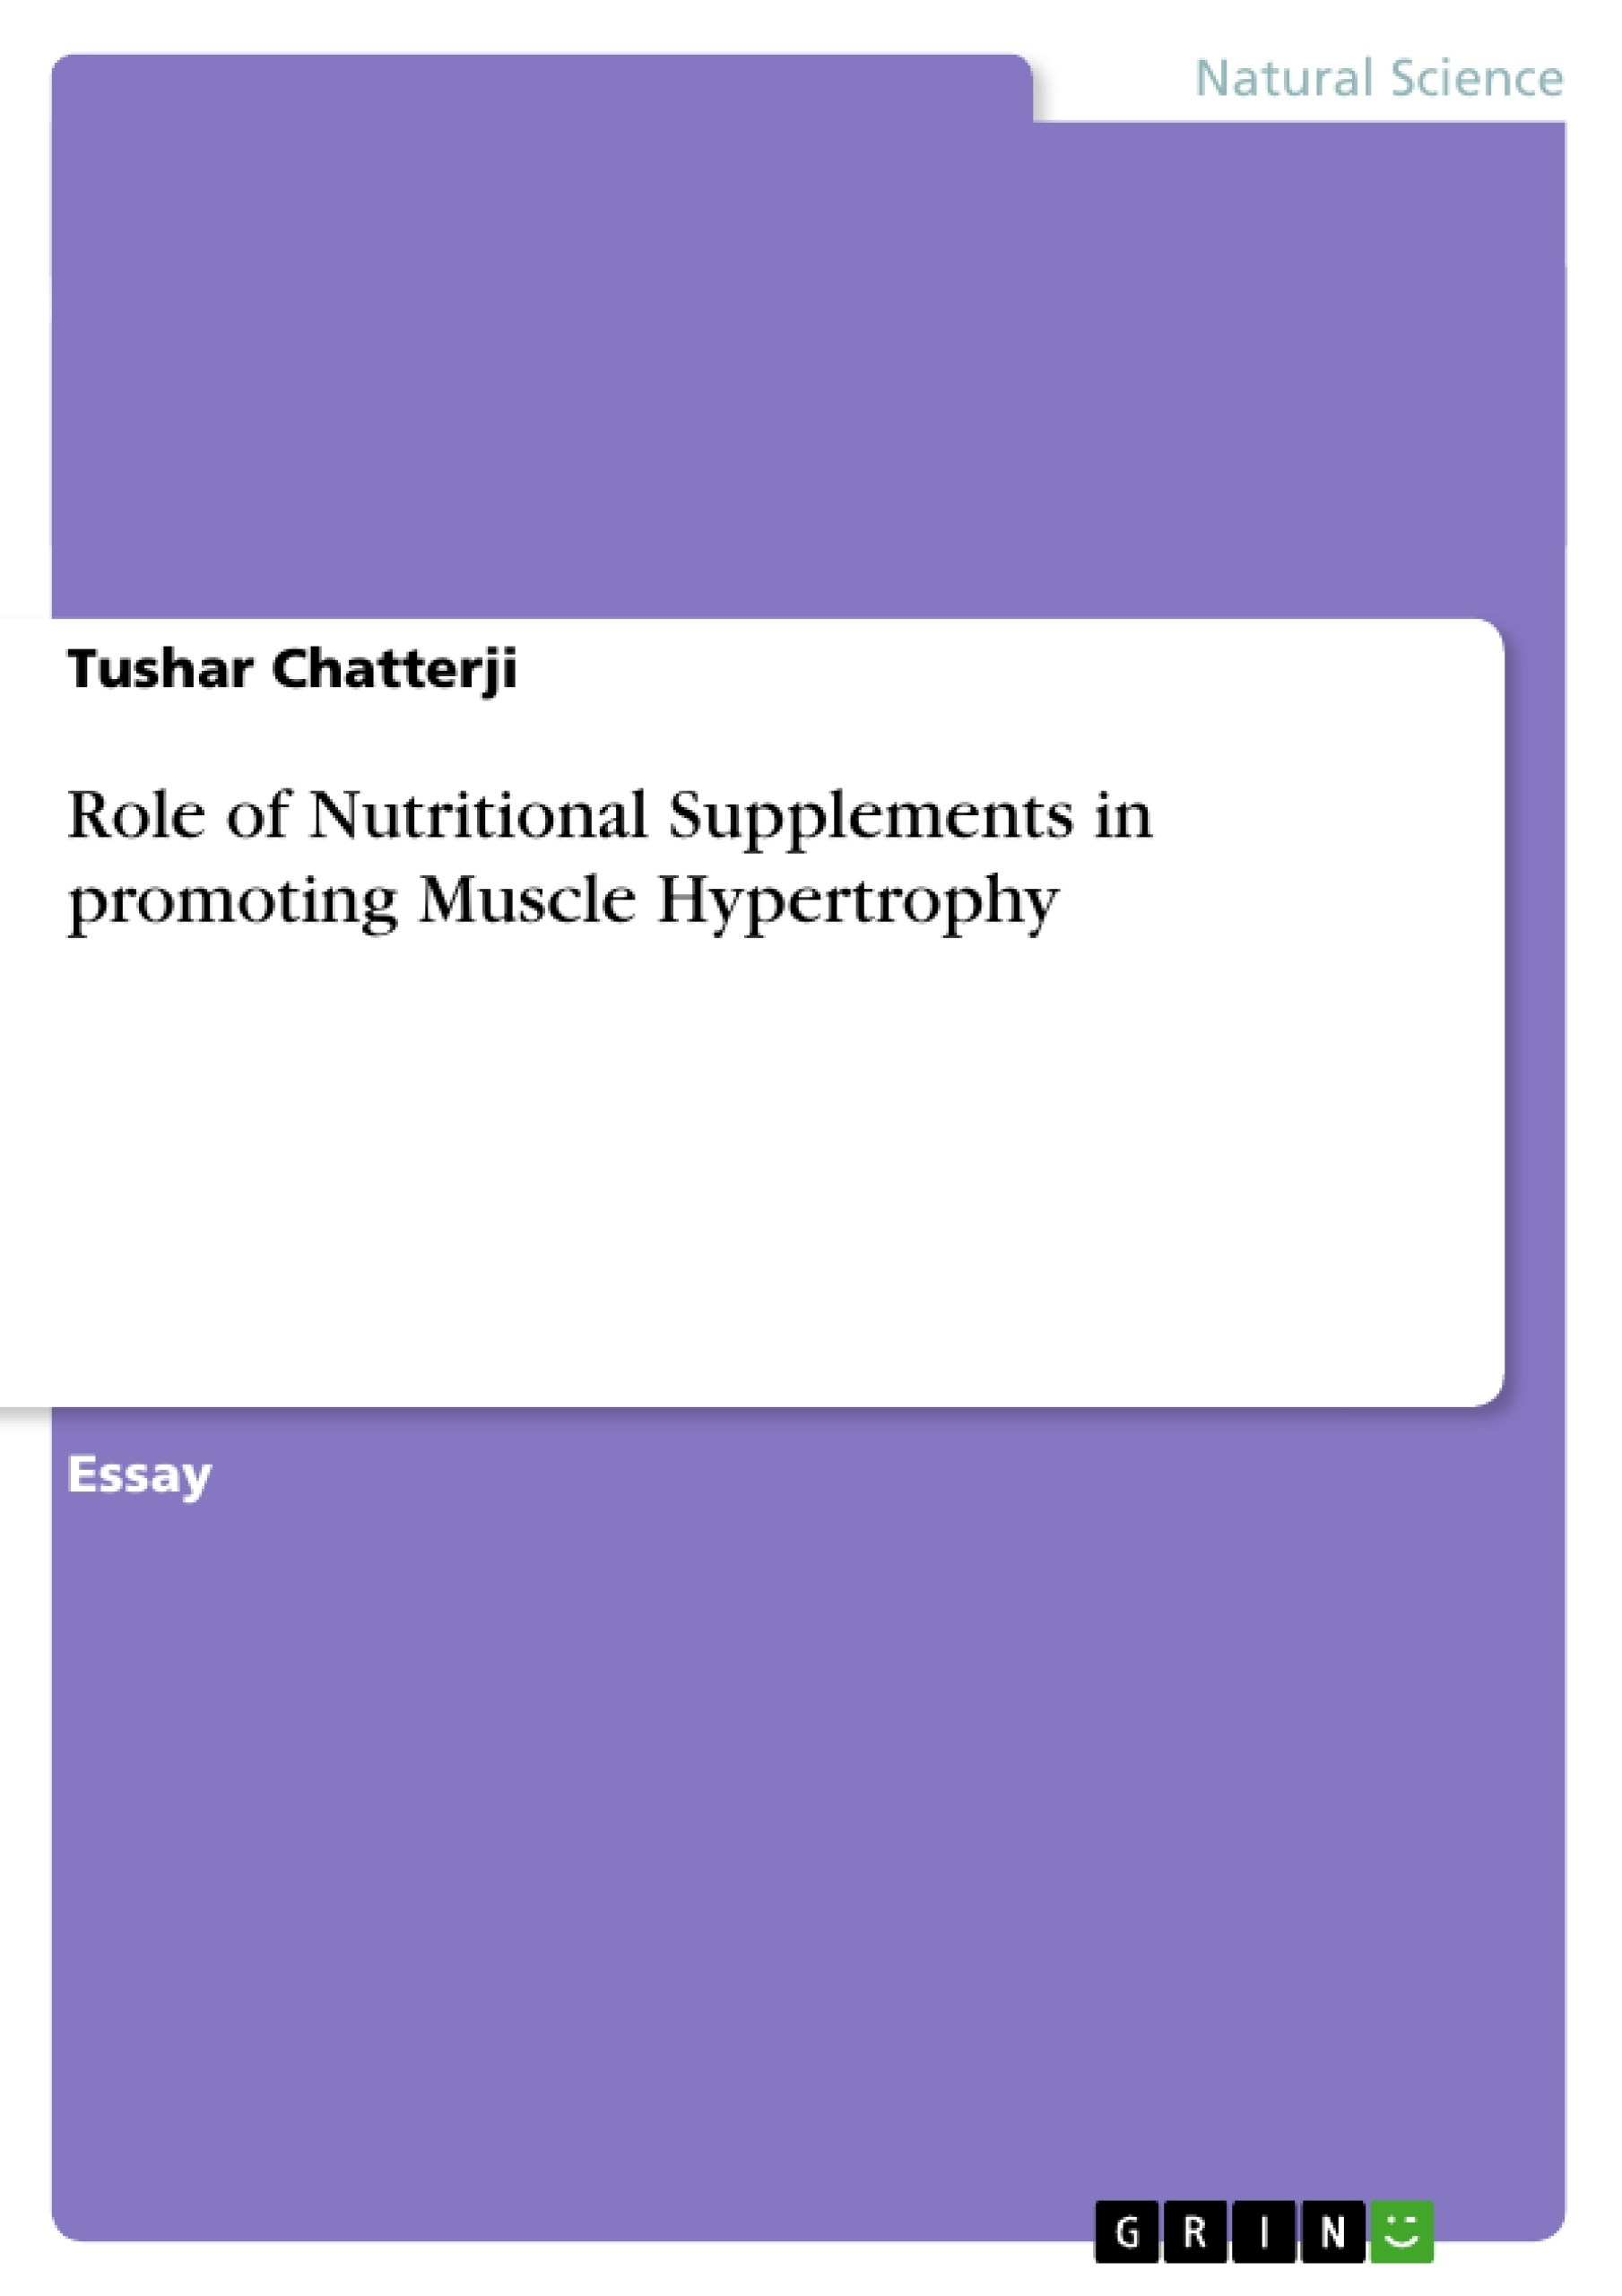 Title: Role of Nutritional Supplements in promoting Muscle Hypertrophy